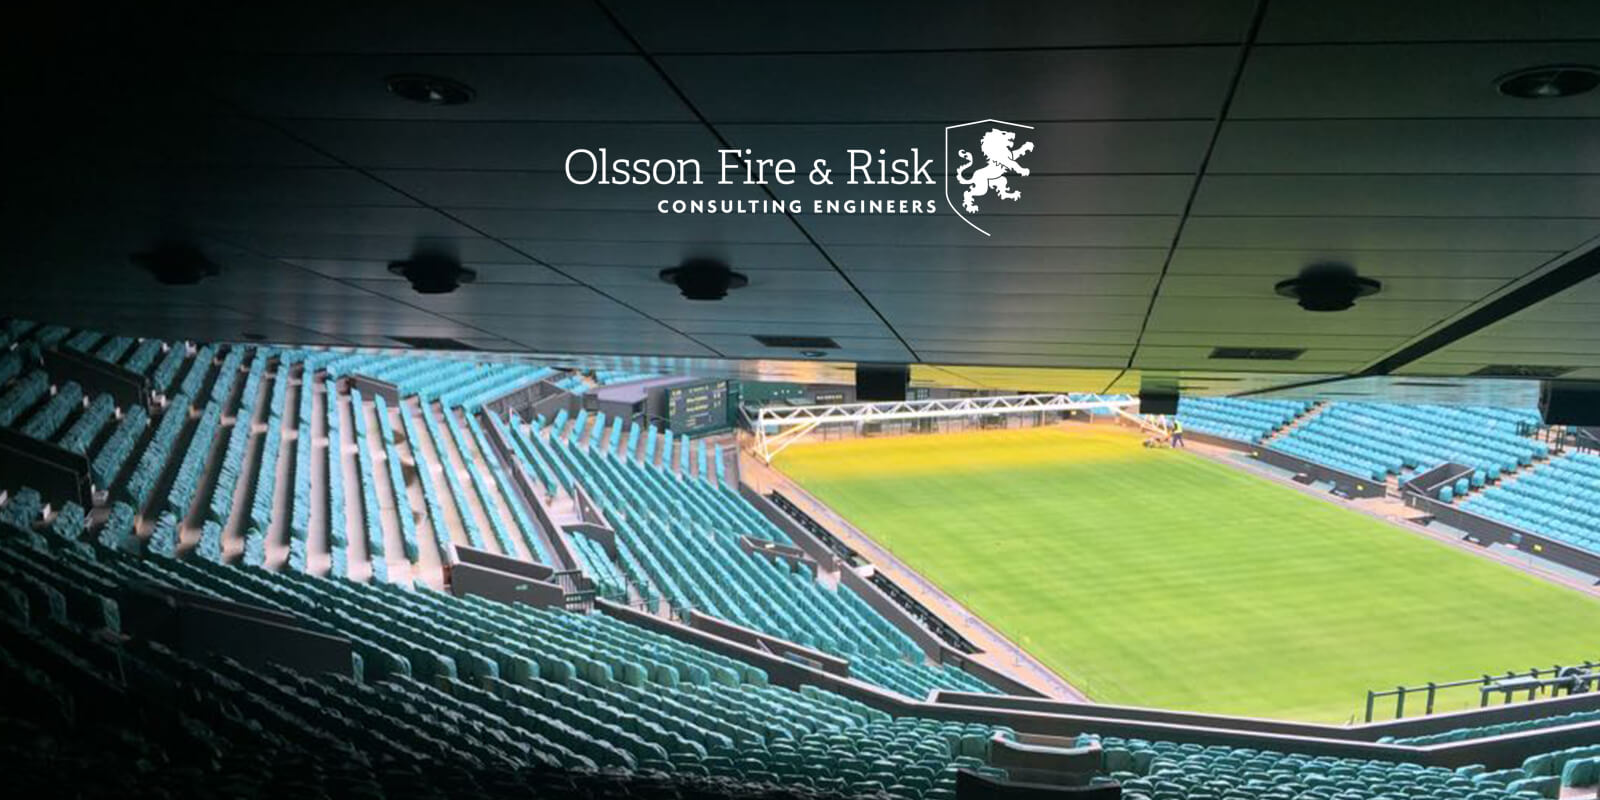 Sam Liptrott, director of Olsson Fire & Risk (London) uses Synergy to help keep track of 150 active projects.